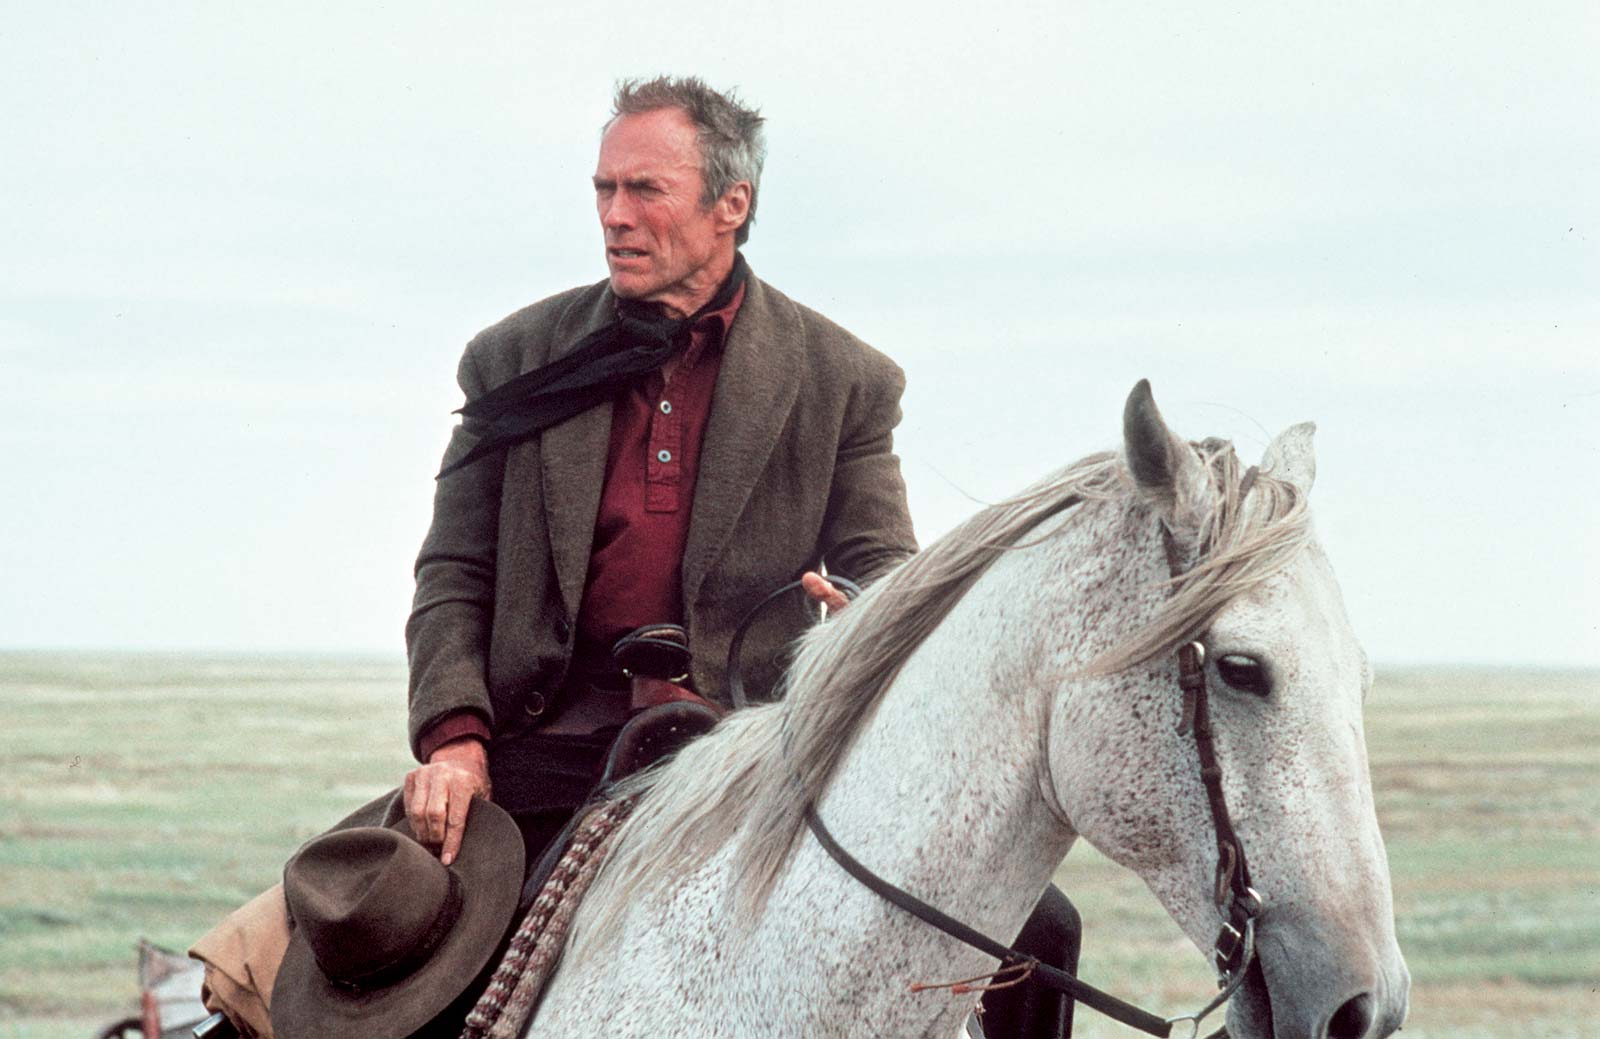 g37 20 Things You Didn't Know About Clint Eastwood